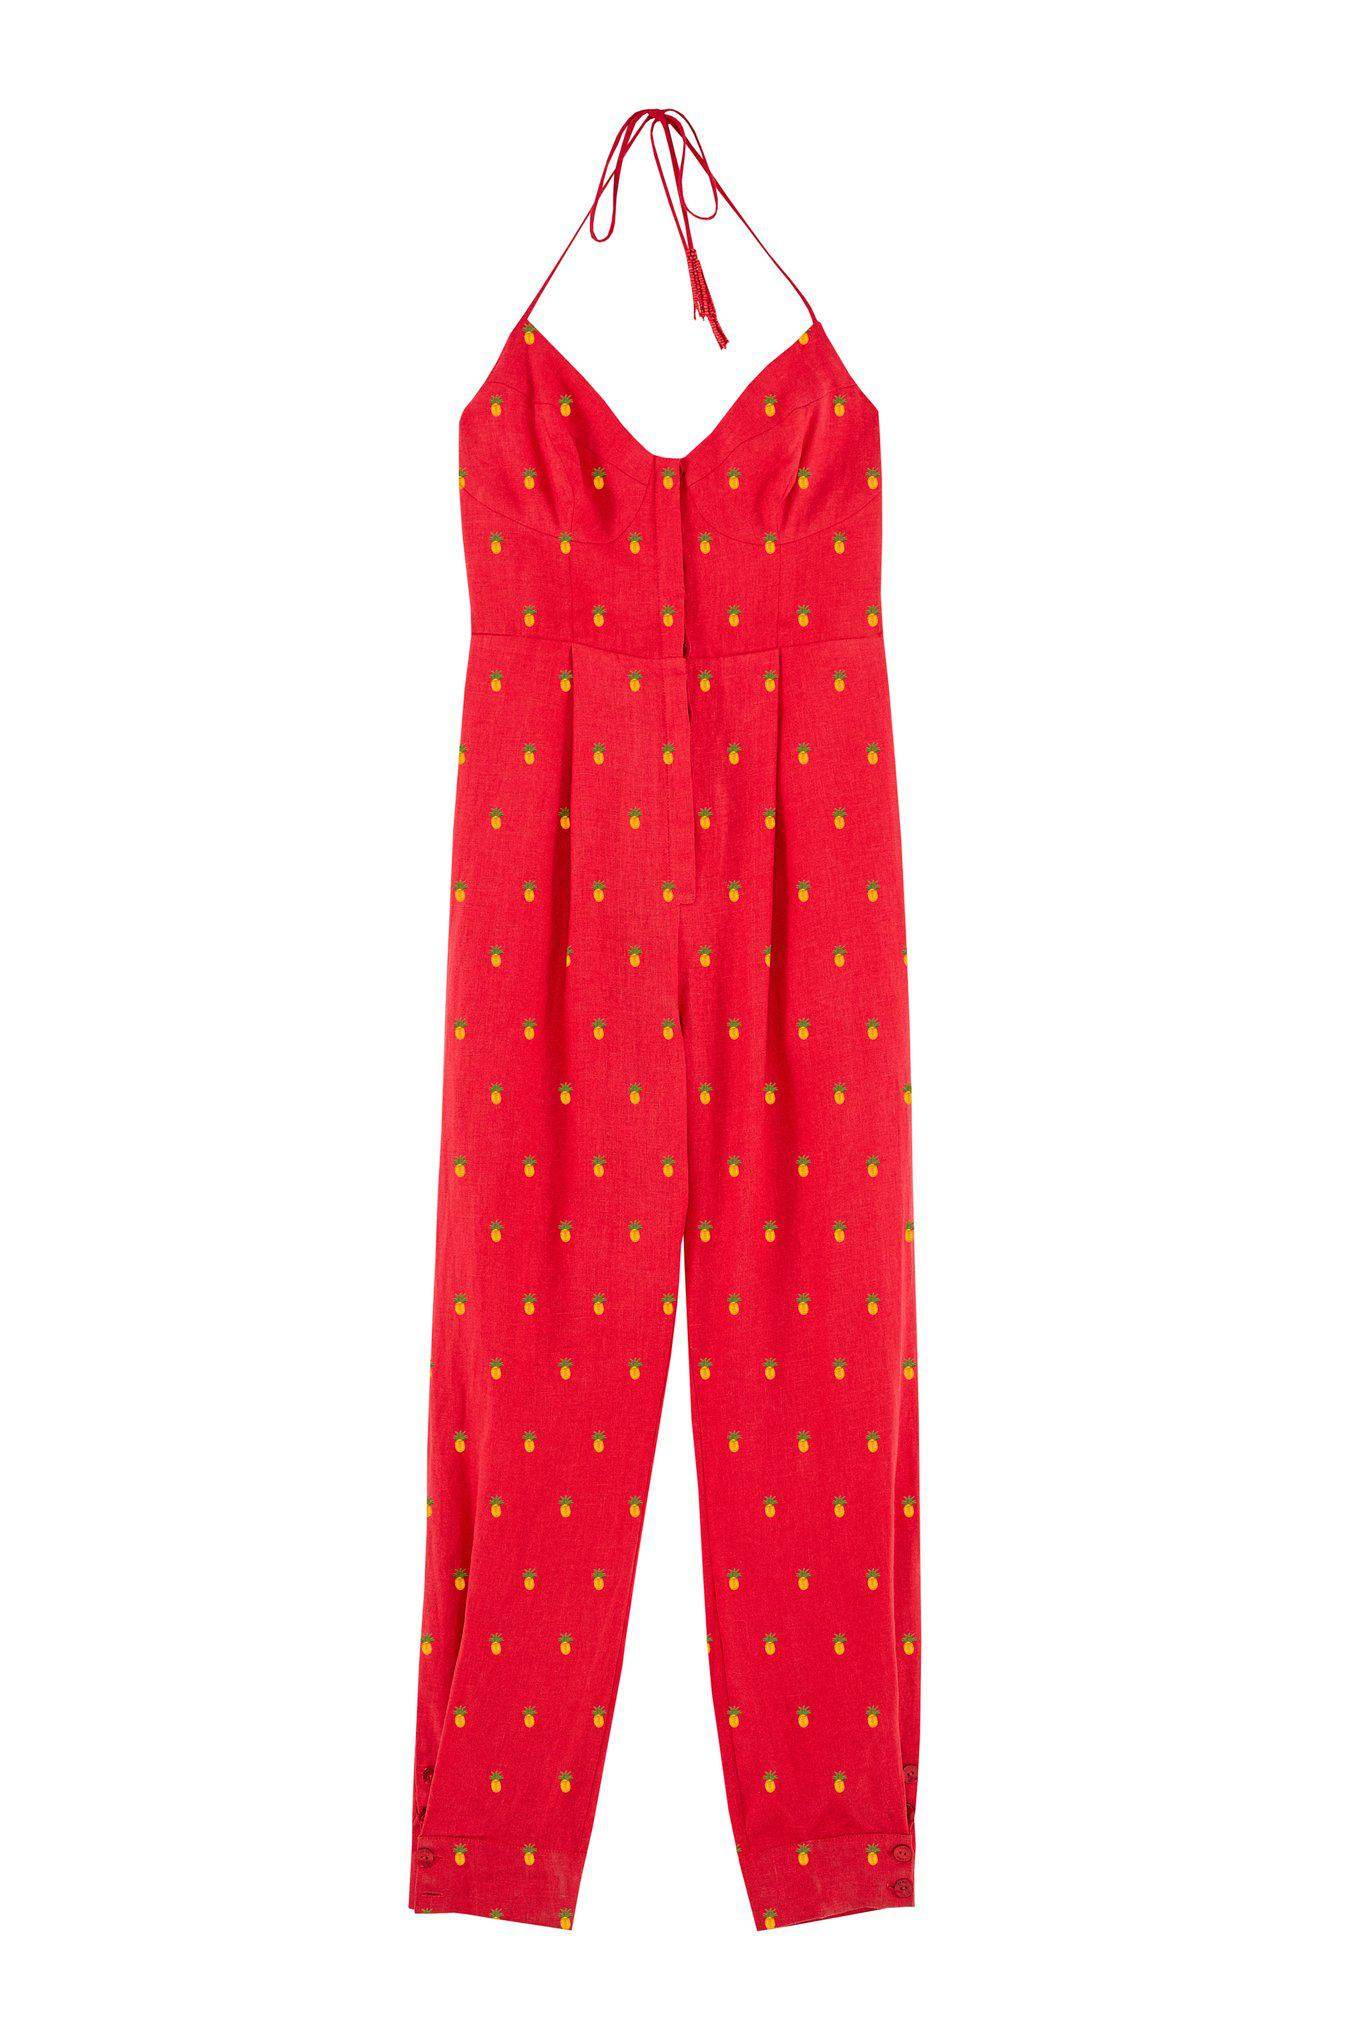 EMBROIDERED PINEAPPLES RED JUMPSUIT 4